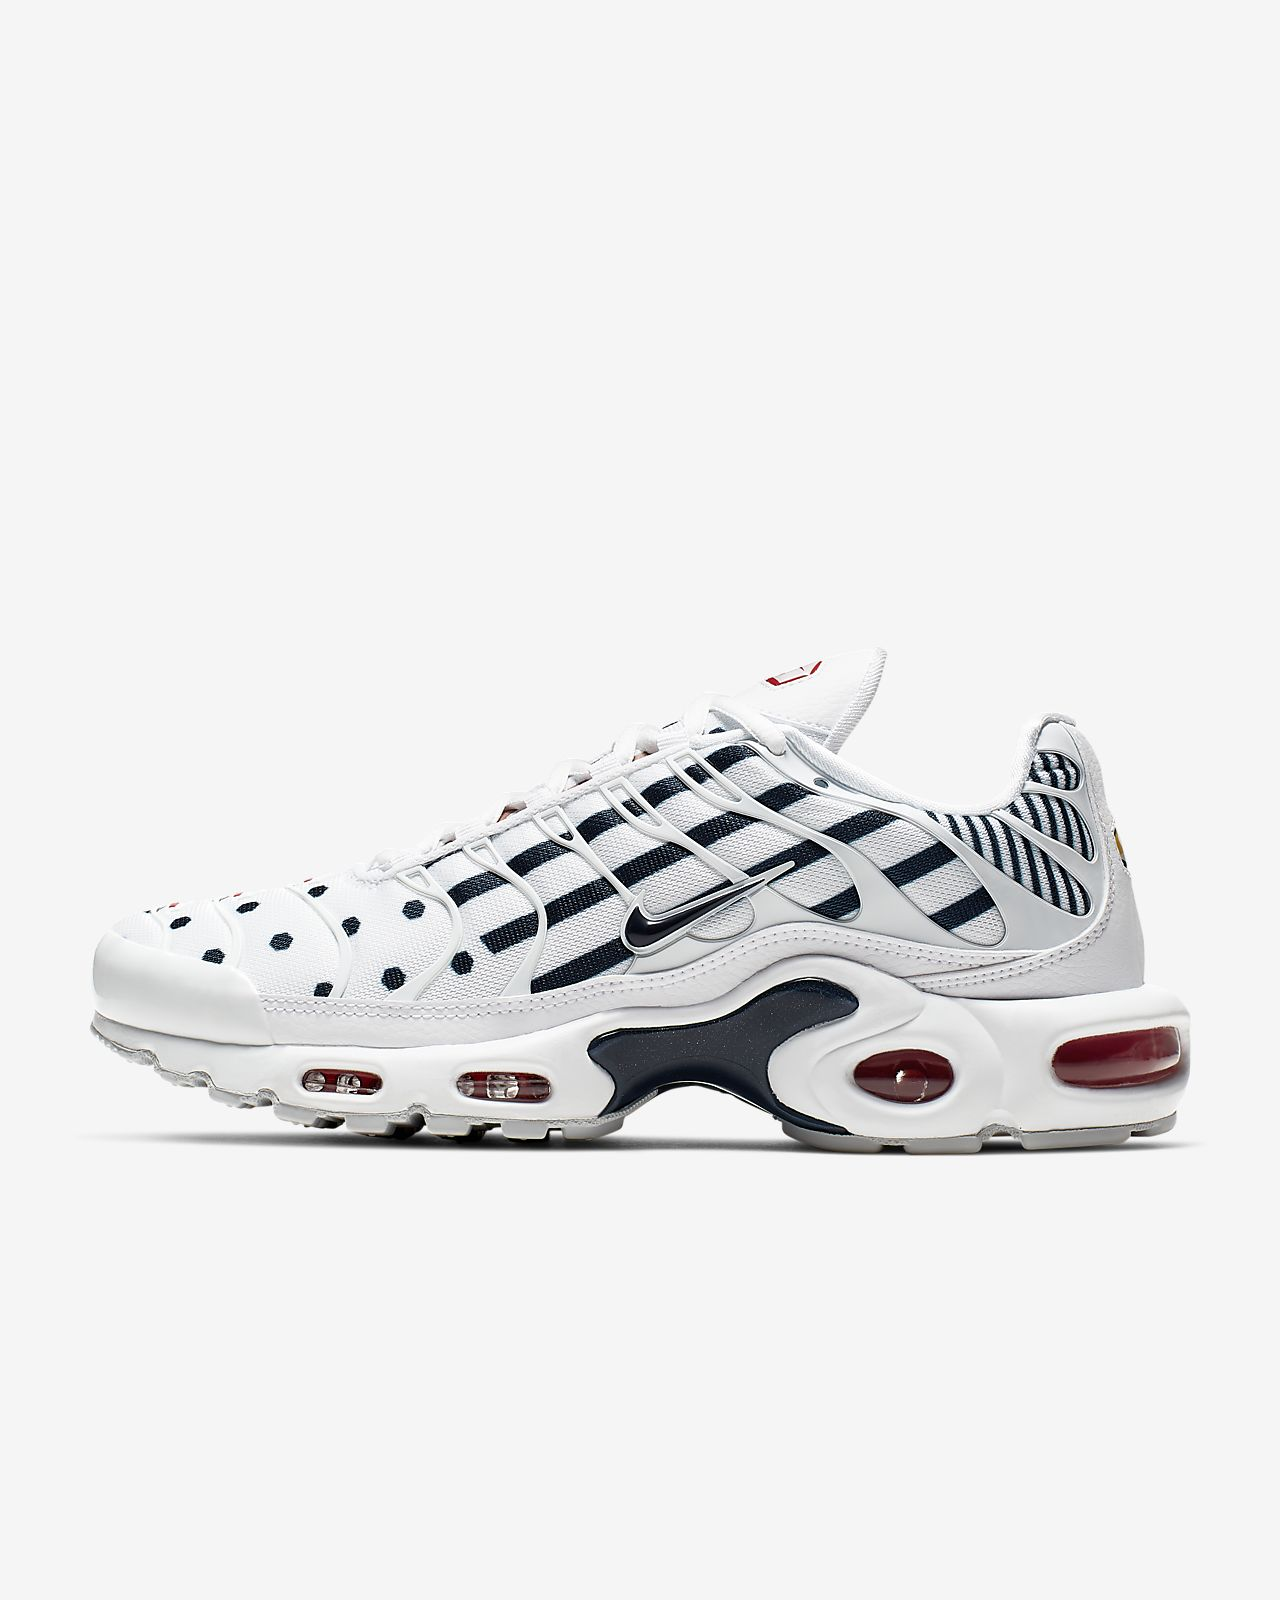 factory price 0d81f 4d04c Nike Air Max Plus TN Unité Totale Women's Shoe